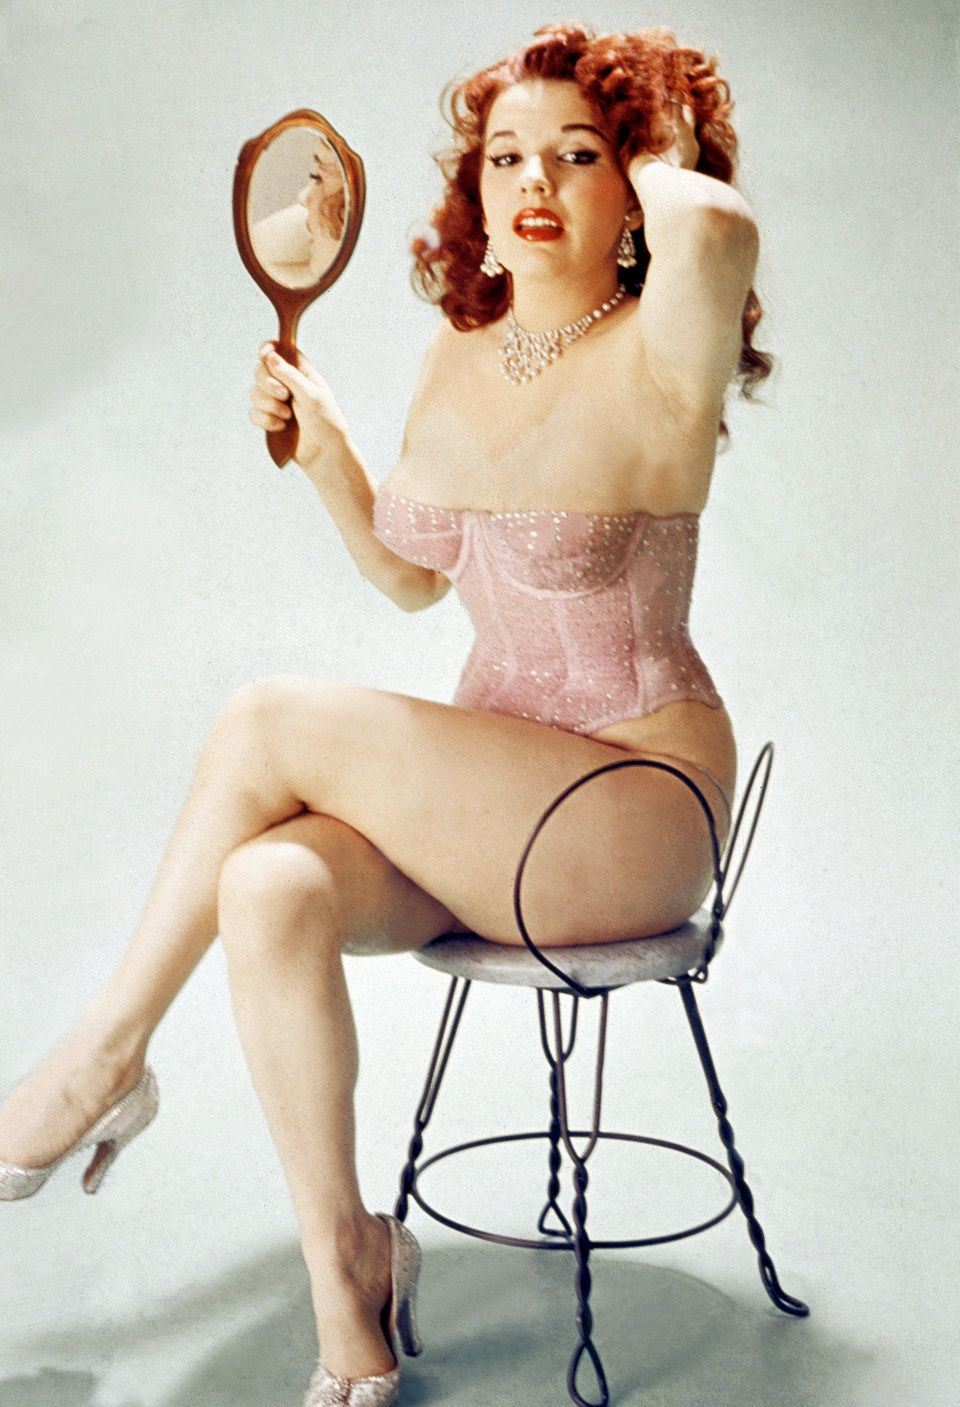 Famous pin-up Blaze Starr (real name Fannie Belle Fleming) in 1950.